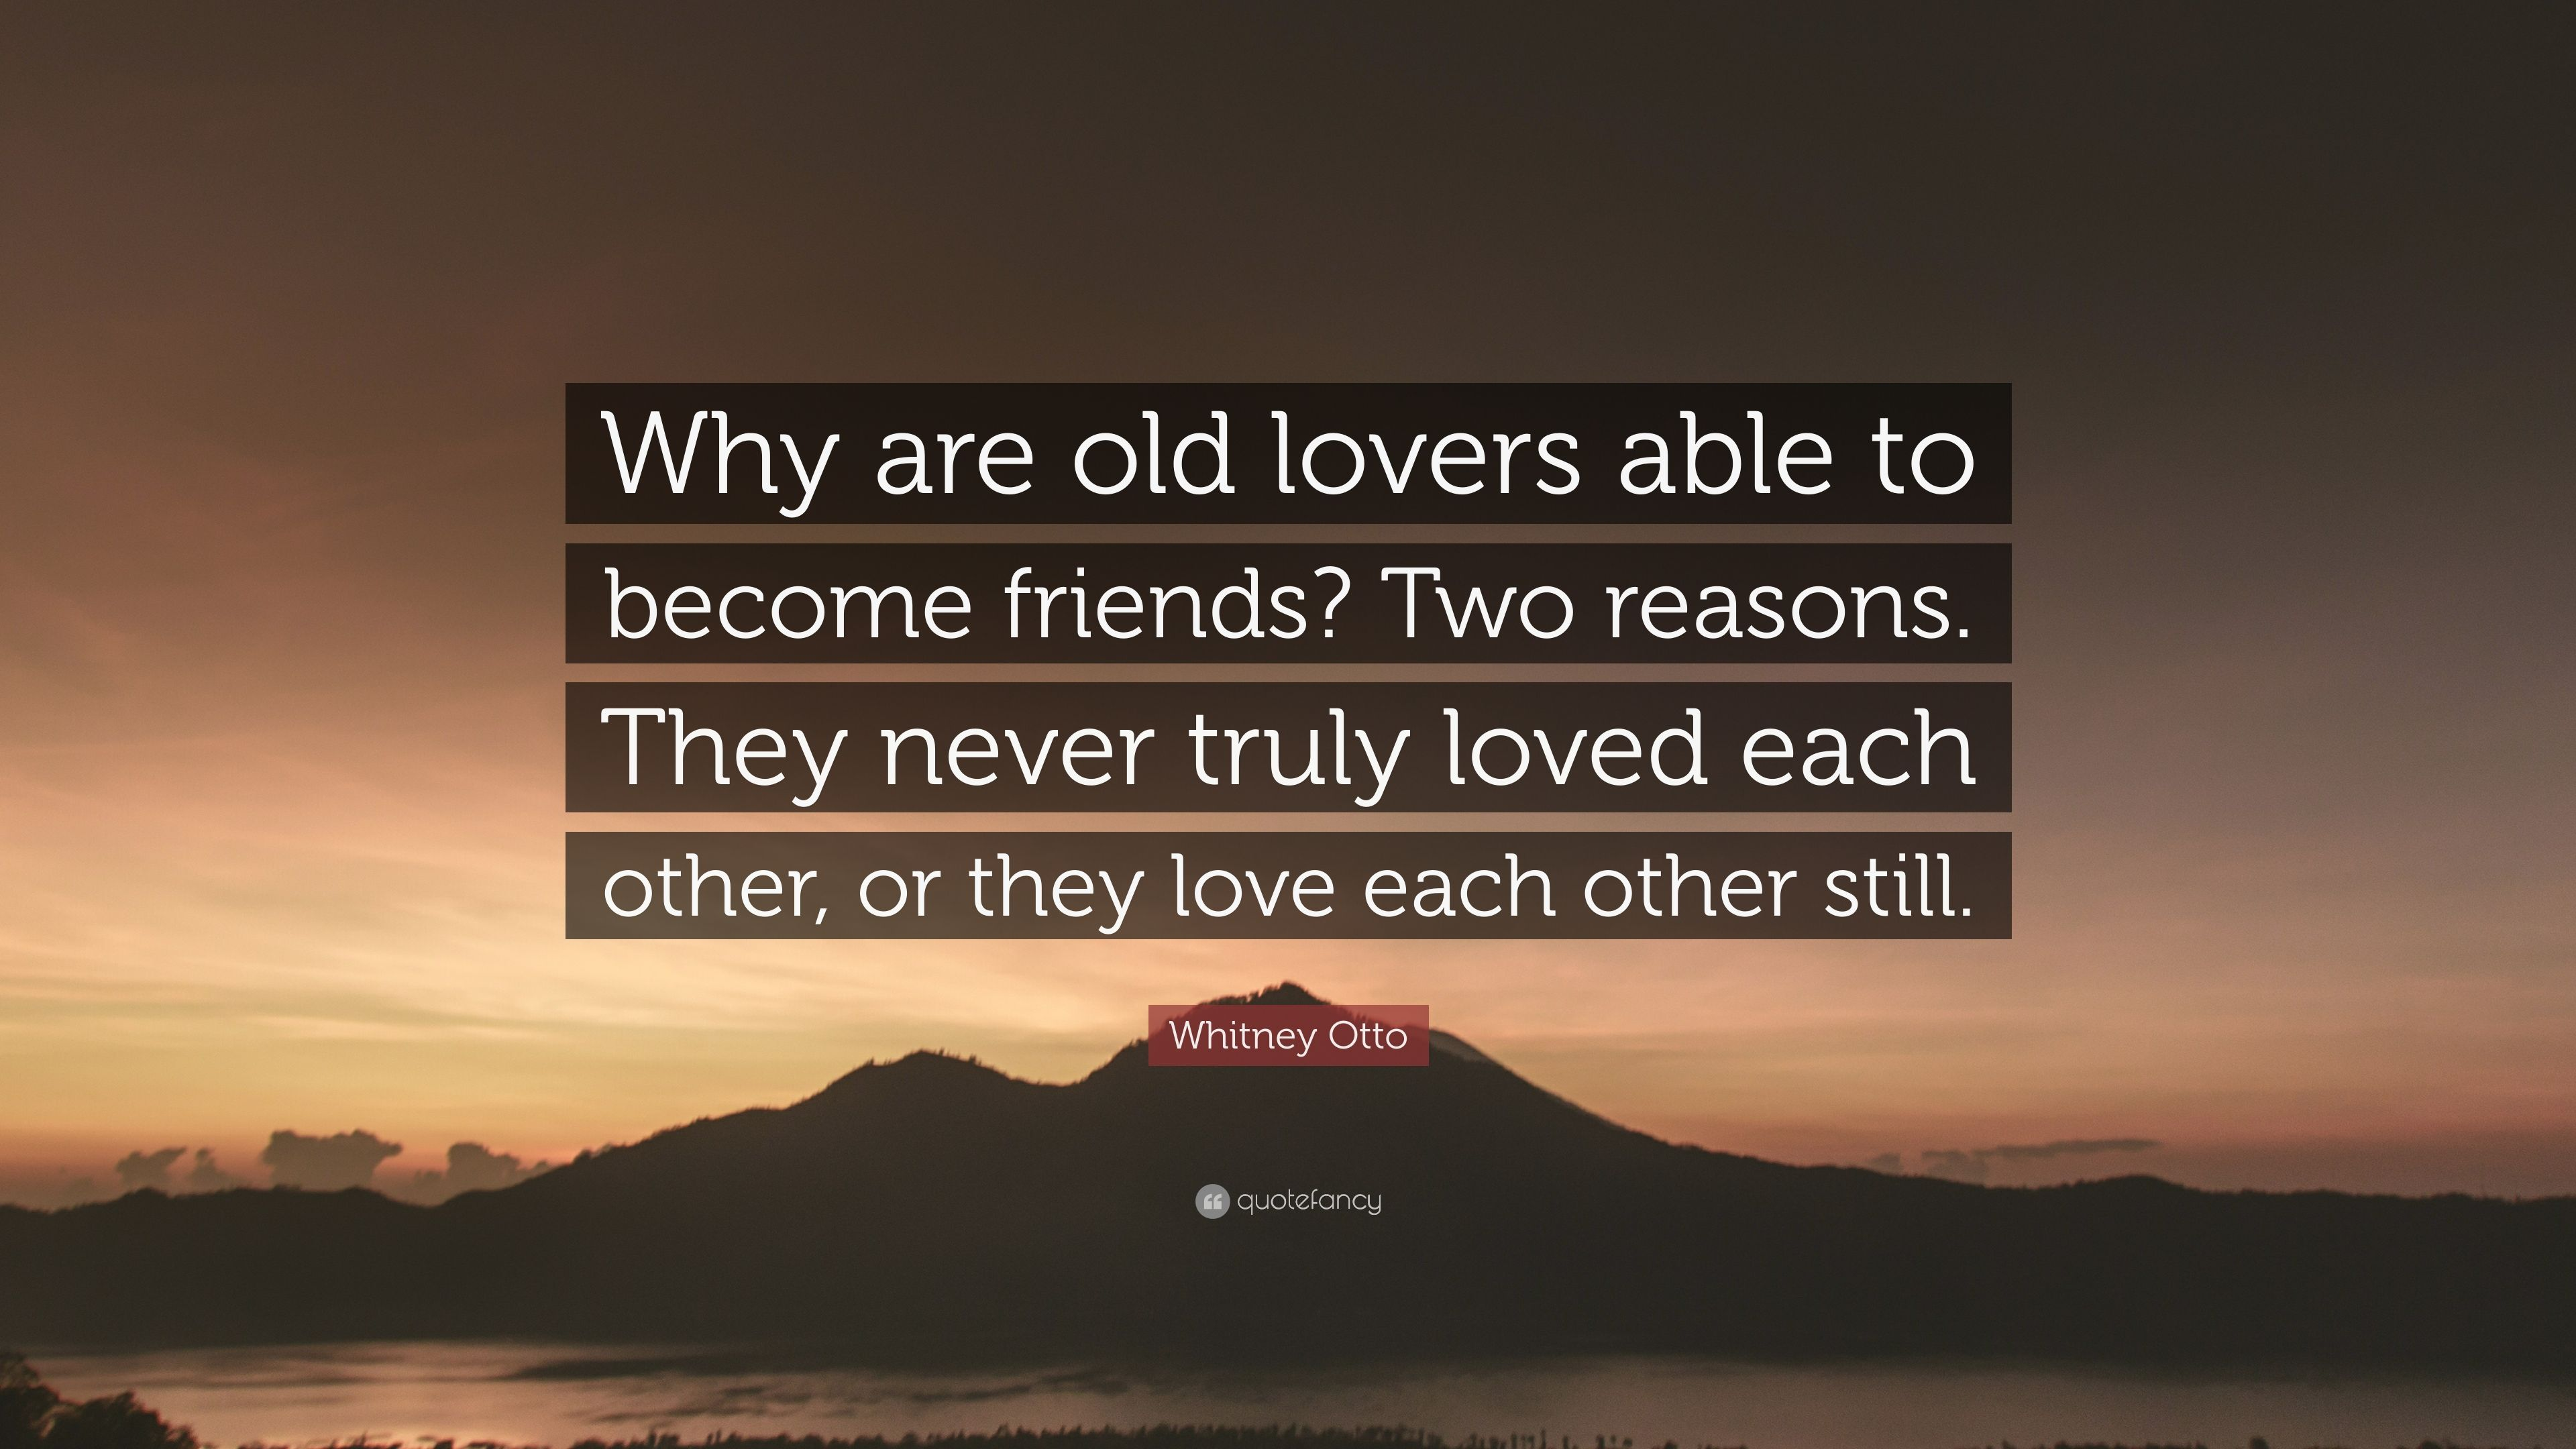 Thoughtful Quotes 100  Quotes About Friends Becoming Lovers   100 Thoughtful